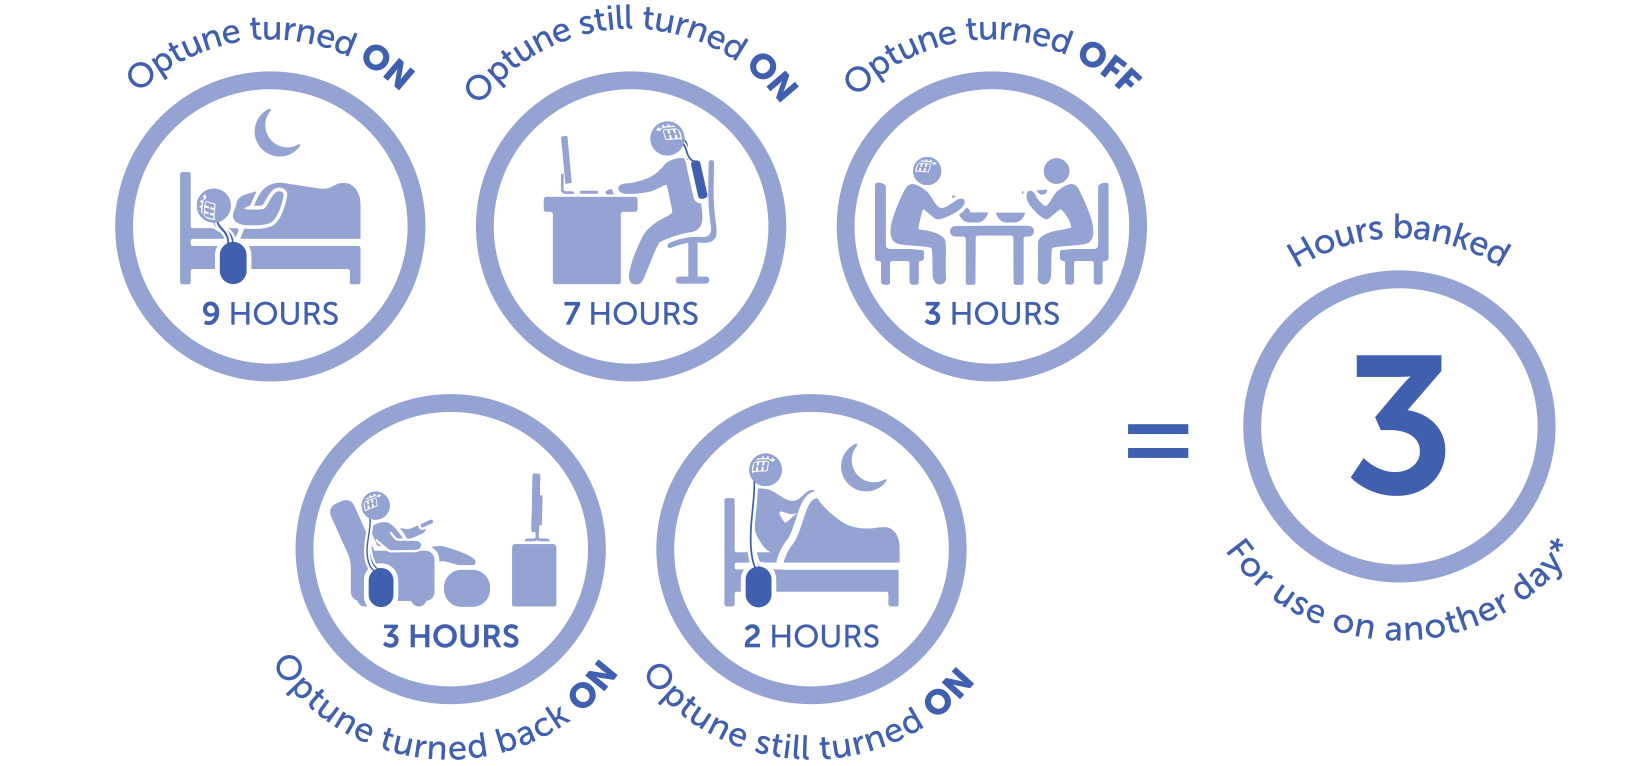 Structuring a day that totals 21 hours with Optune® turned on, leaves 3 hours of use for another day. It is recommended that Optune should be turned on for at least 18 hours per day.